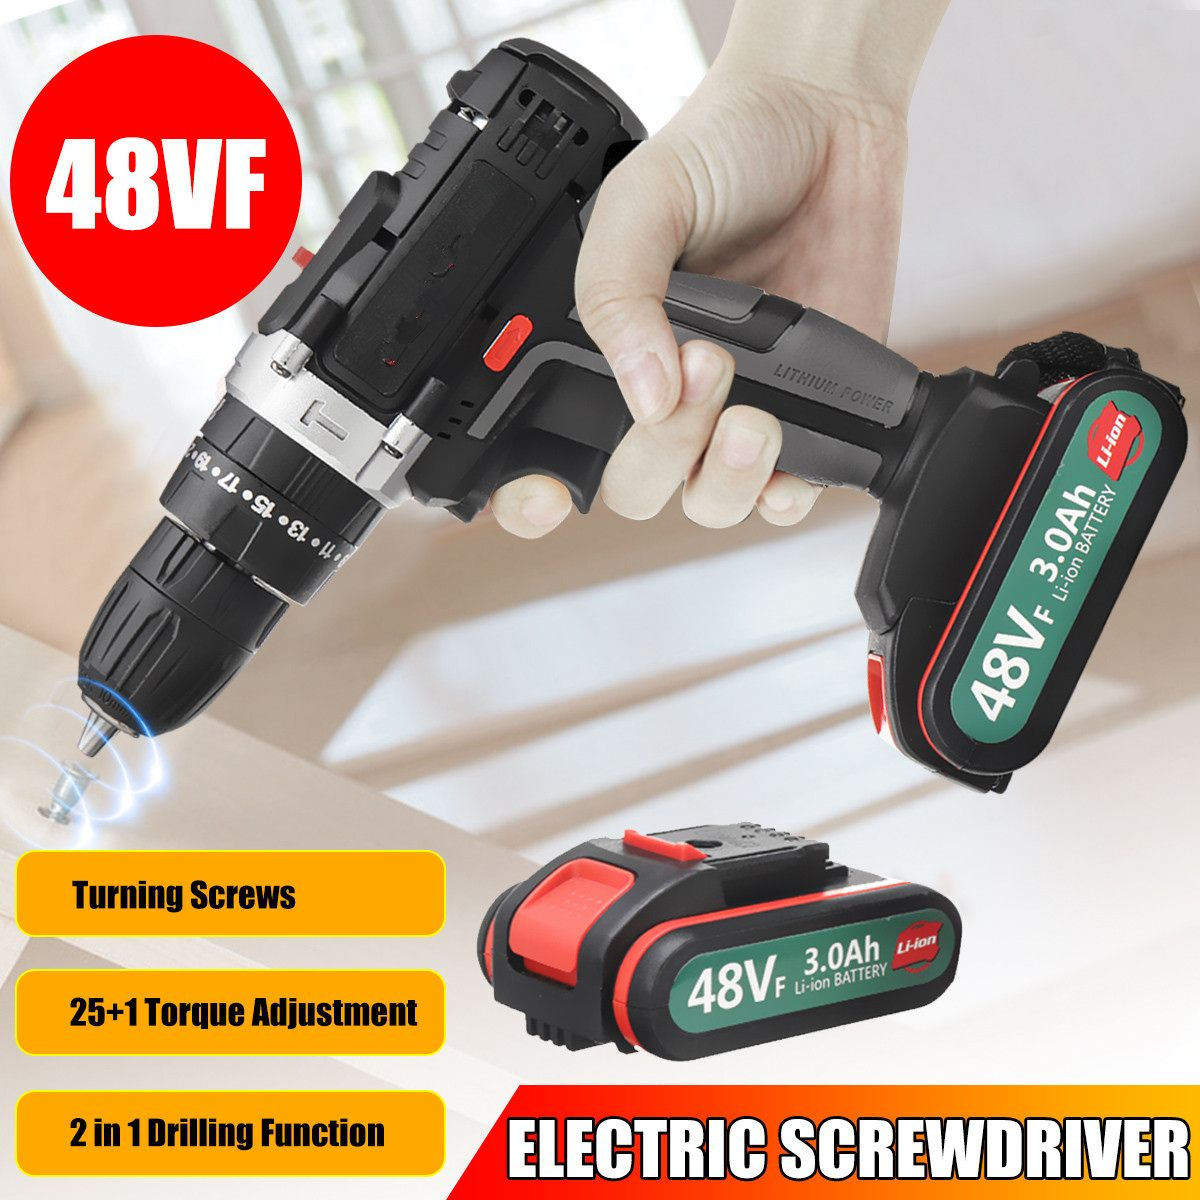 48VF Cordless Electric Screwdriver Impact Drill 25+1 Torque Adjustment Rechargeable LI-ION Battery Electric Drill Power Tools